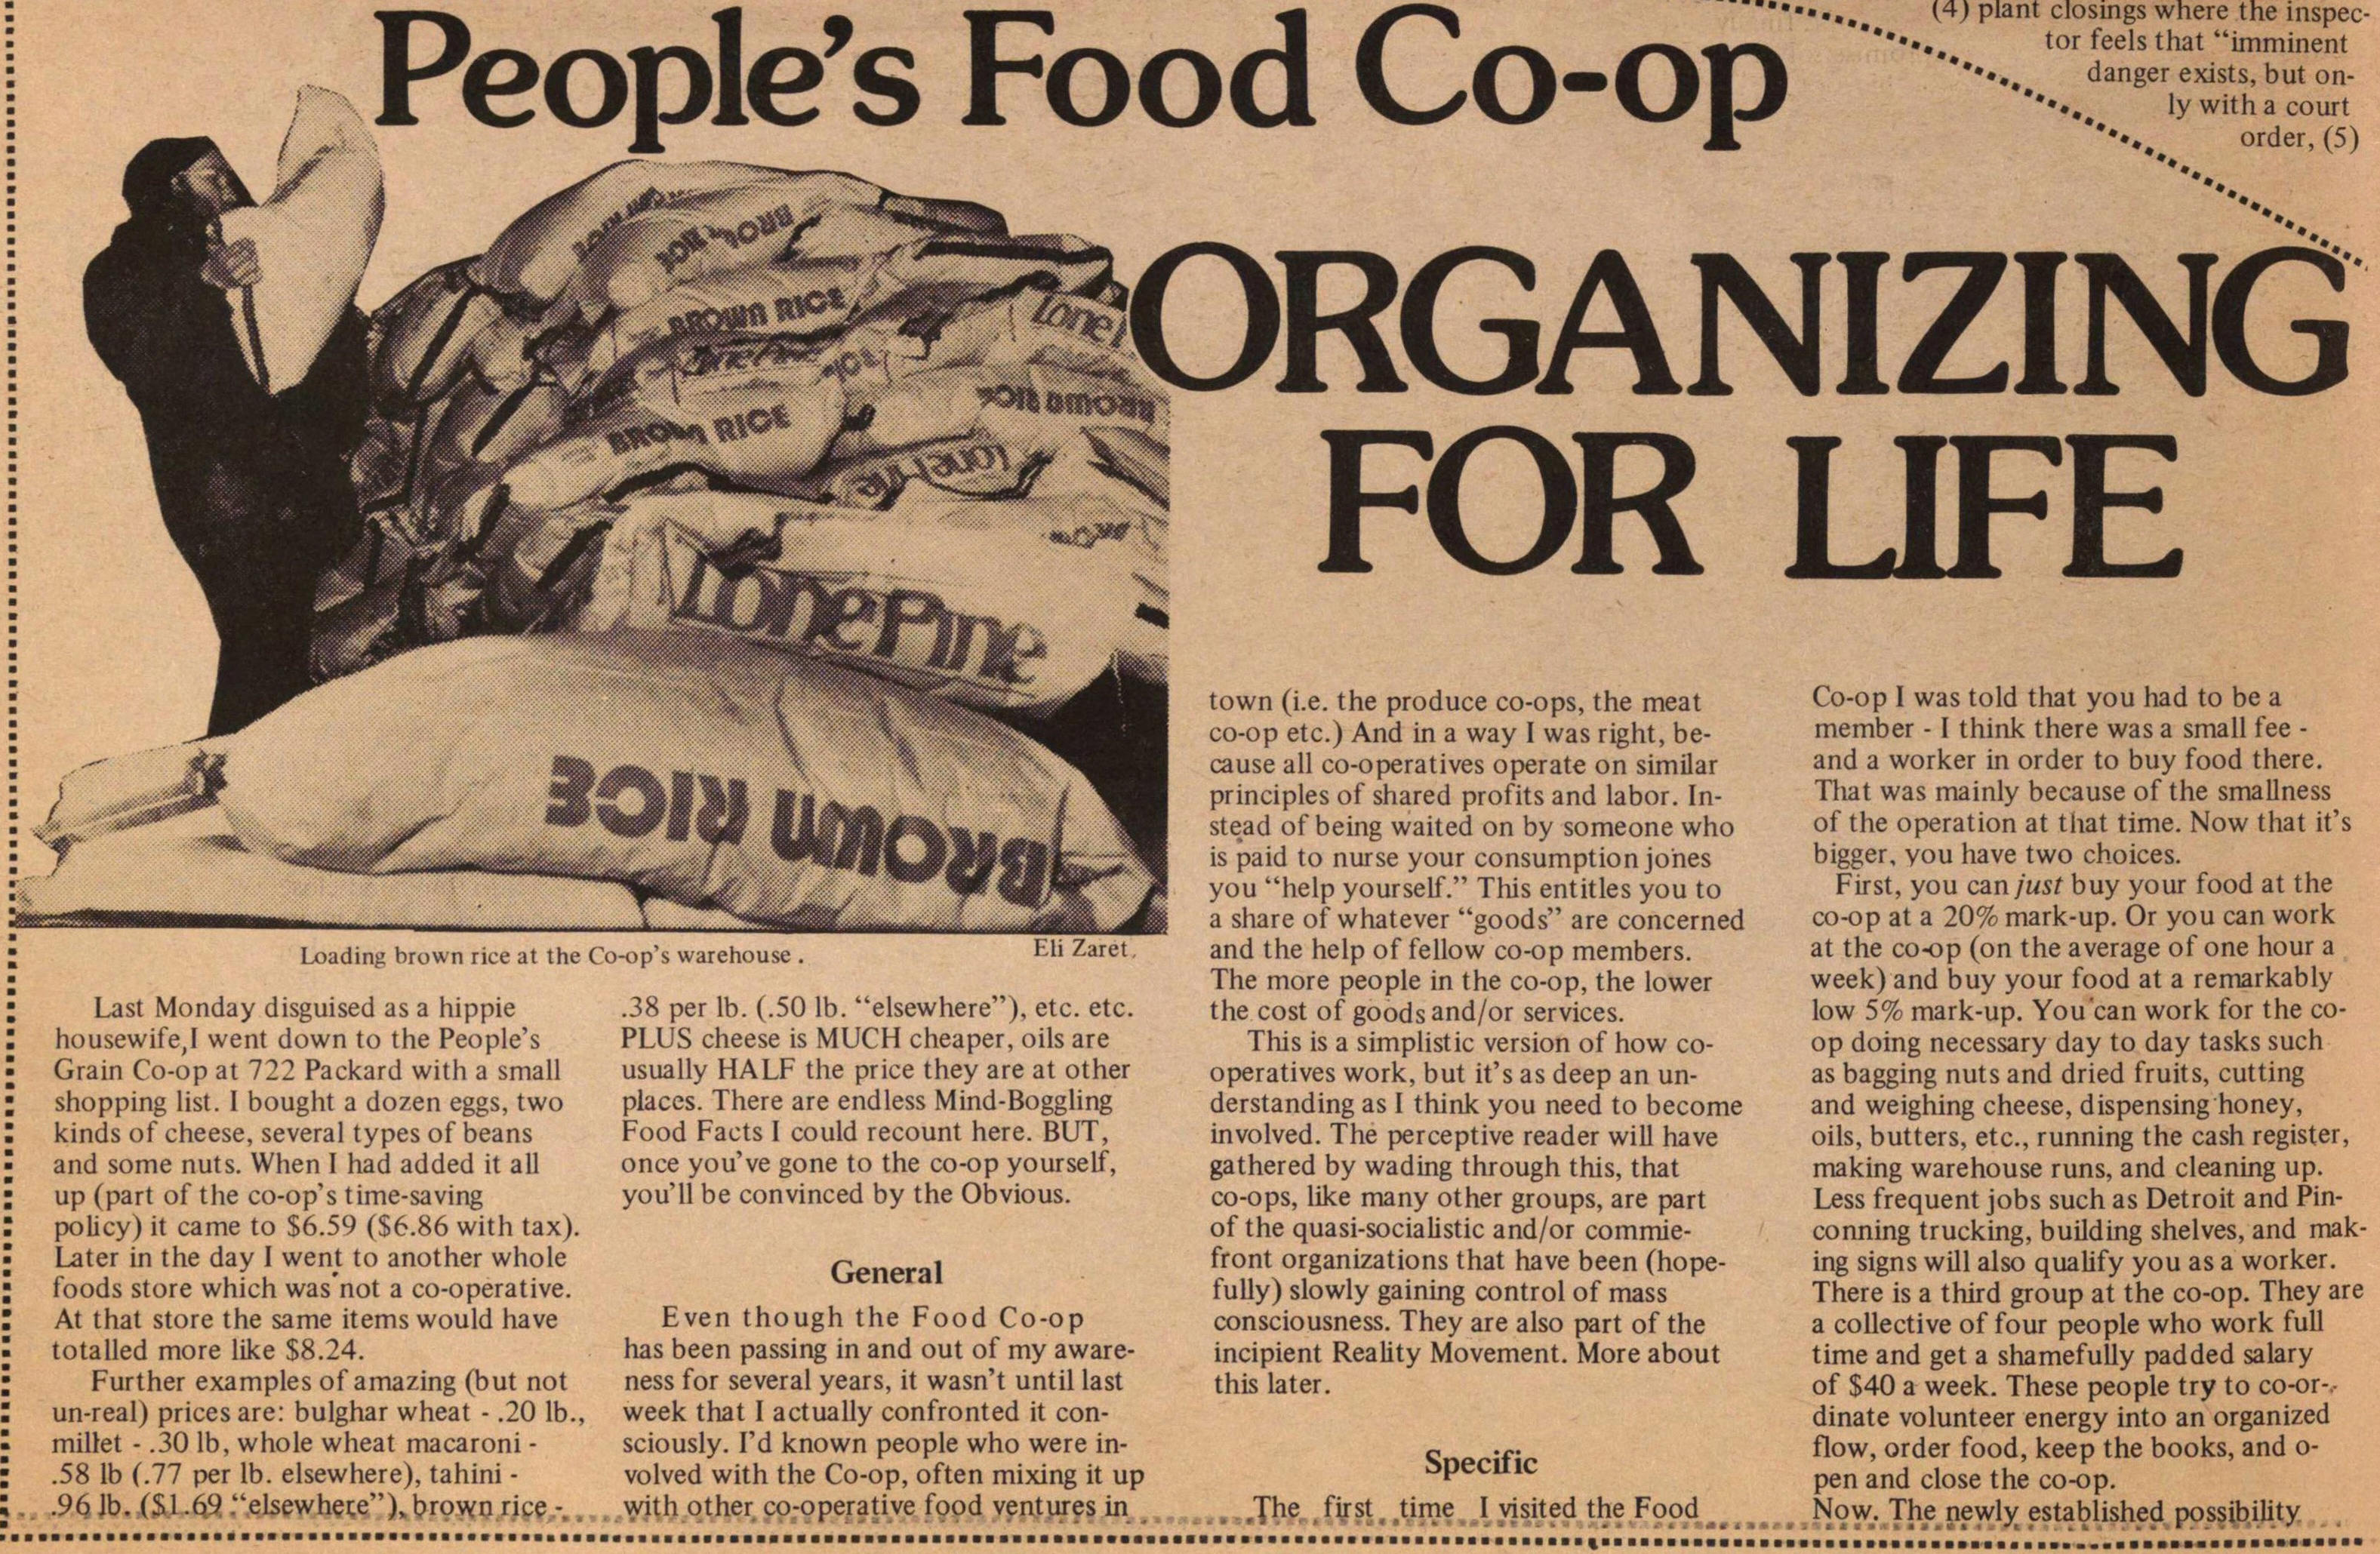 People's Food Co-op image